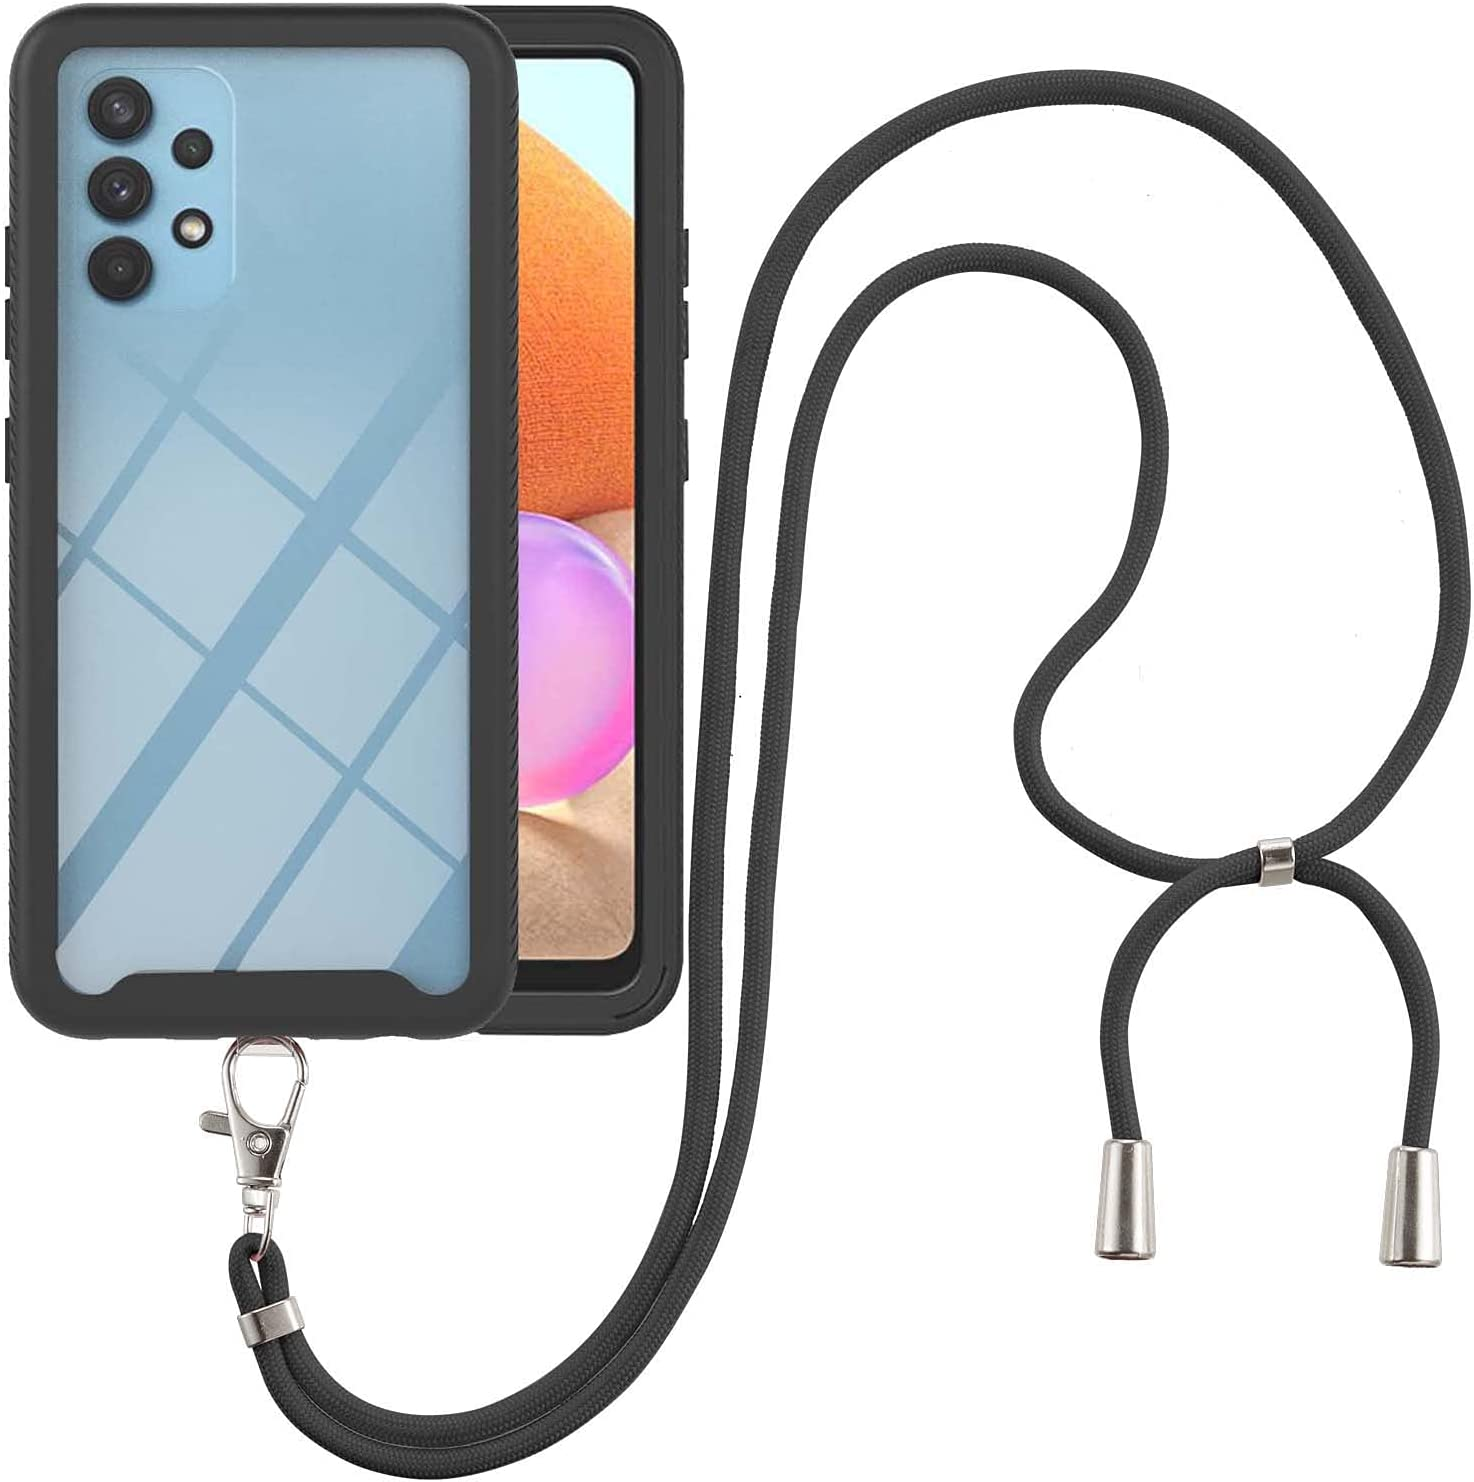 Samsung A32 4G Case, EabHulie Transparent Back No-Slip Bumper with Adjustable Crossbody Lanyard Strap Case, Shockproof Full Body Protection Cover for Samsung Galaxy A32 4G Black